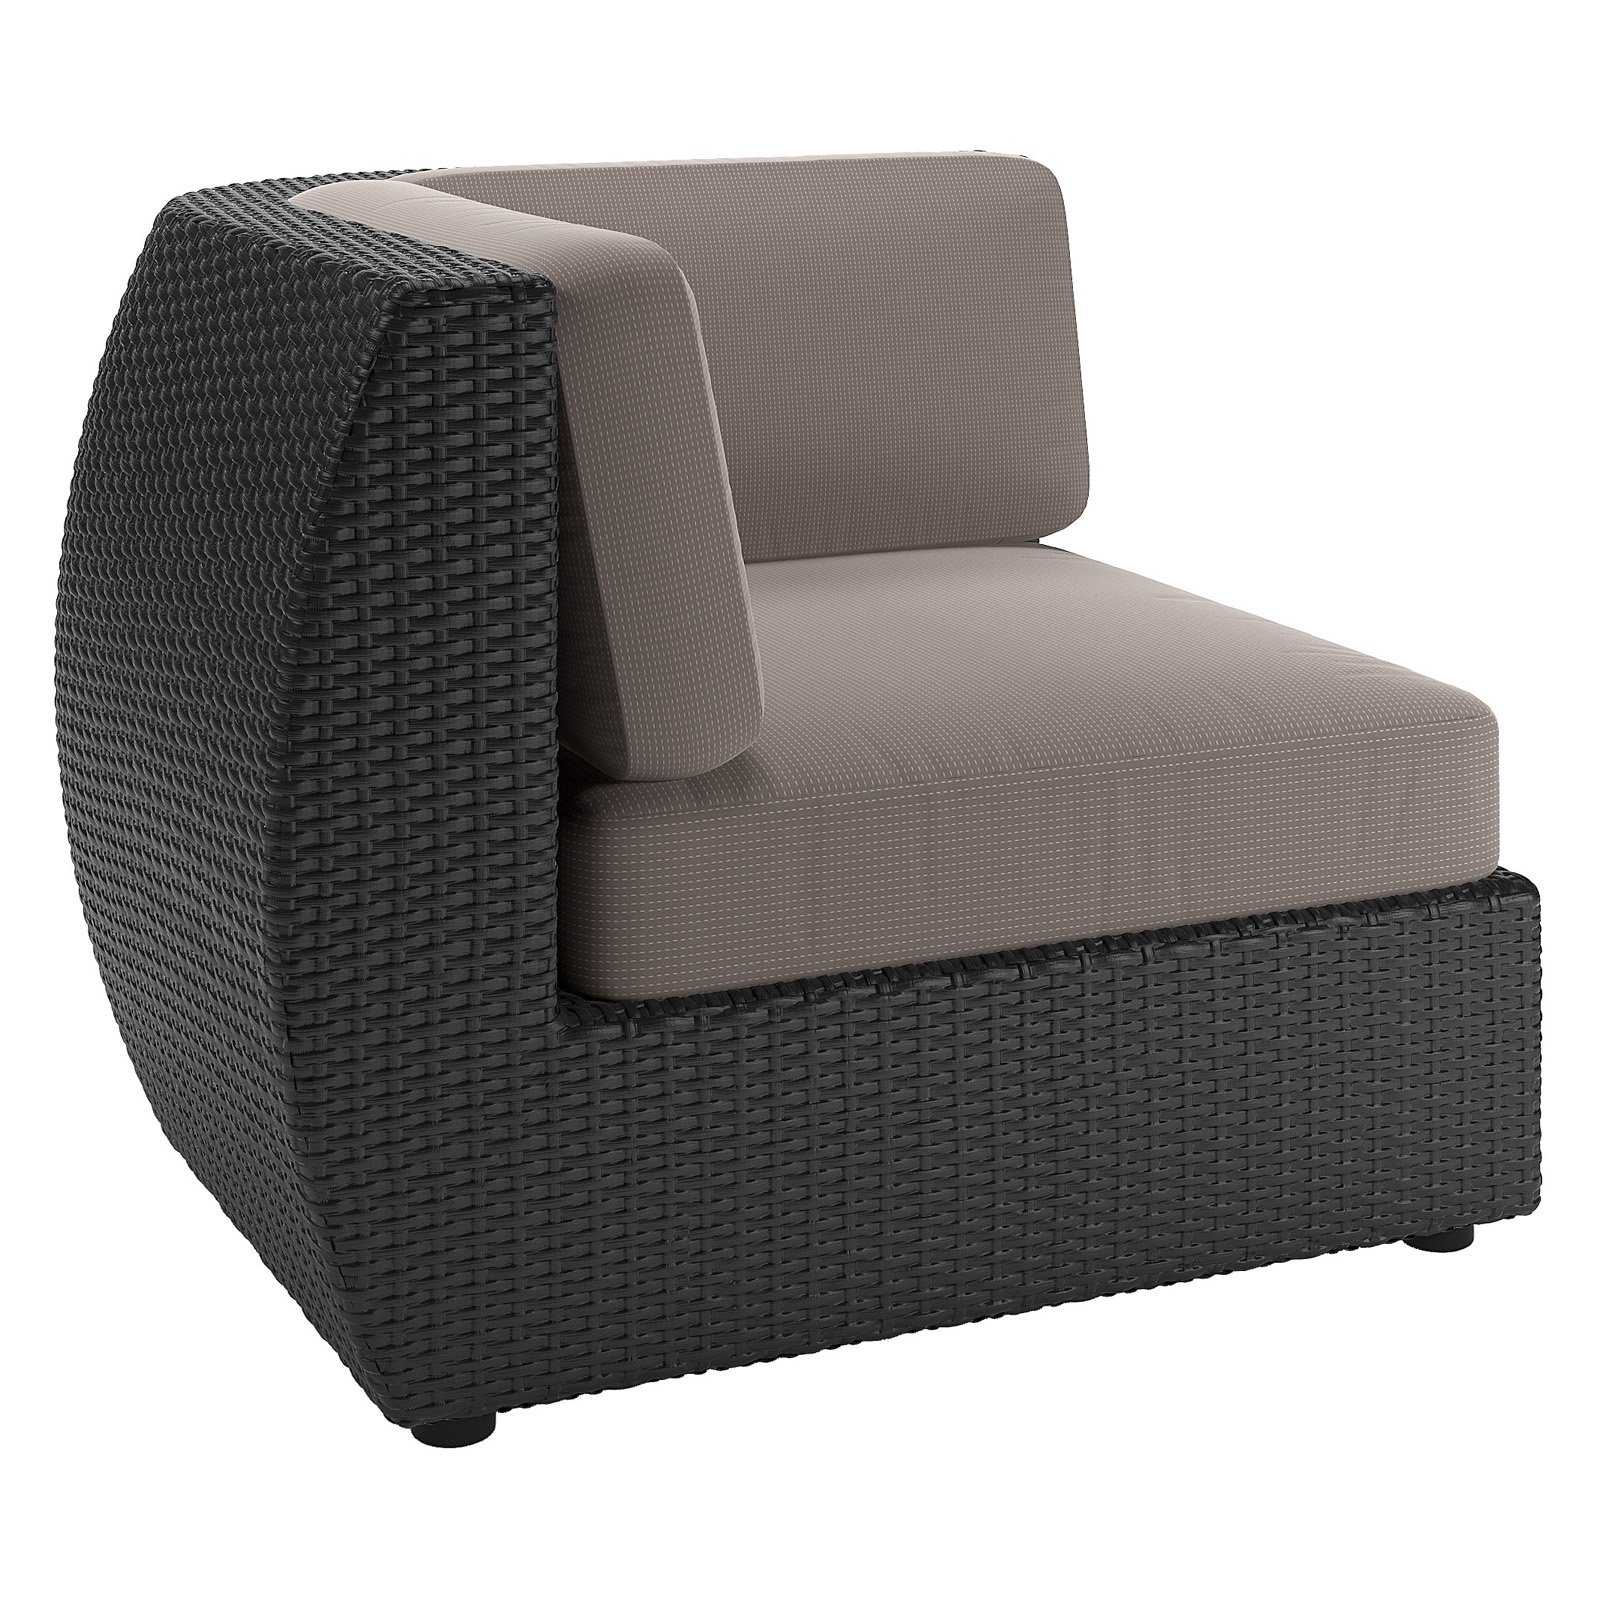 CorLiving Seattle Patio Corner Seat, Textured Black Weave